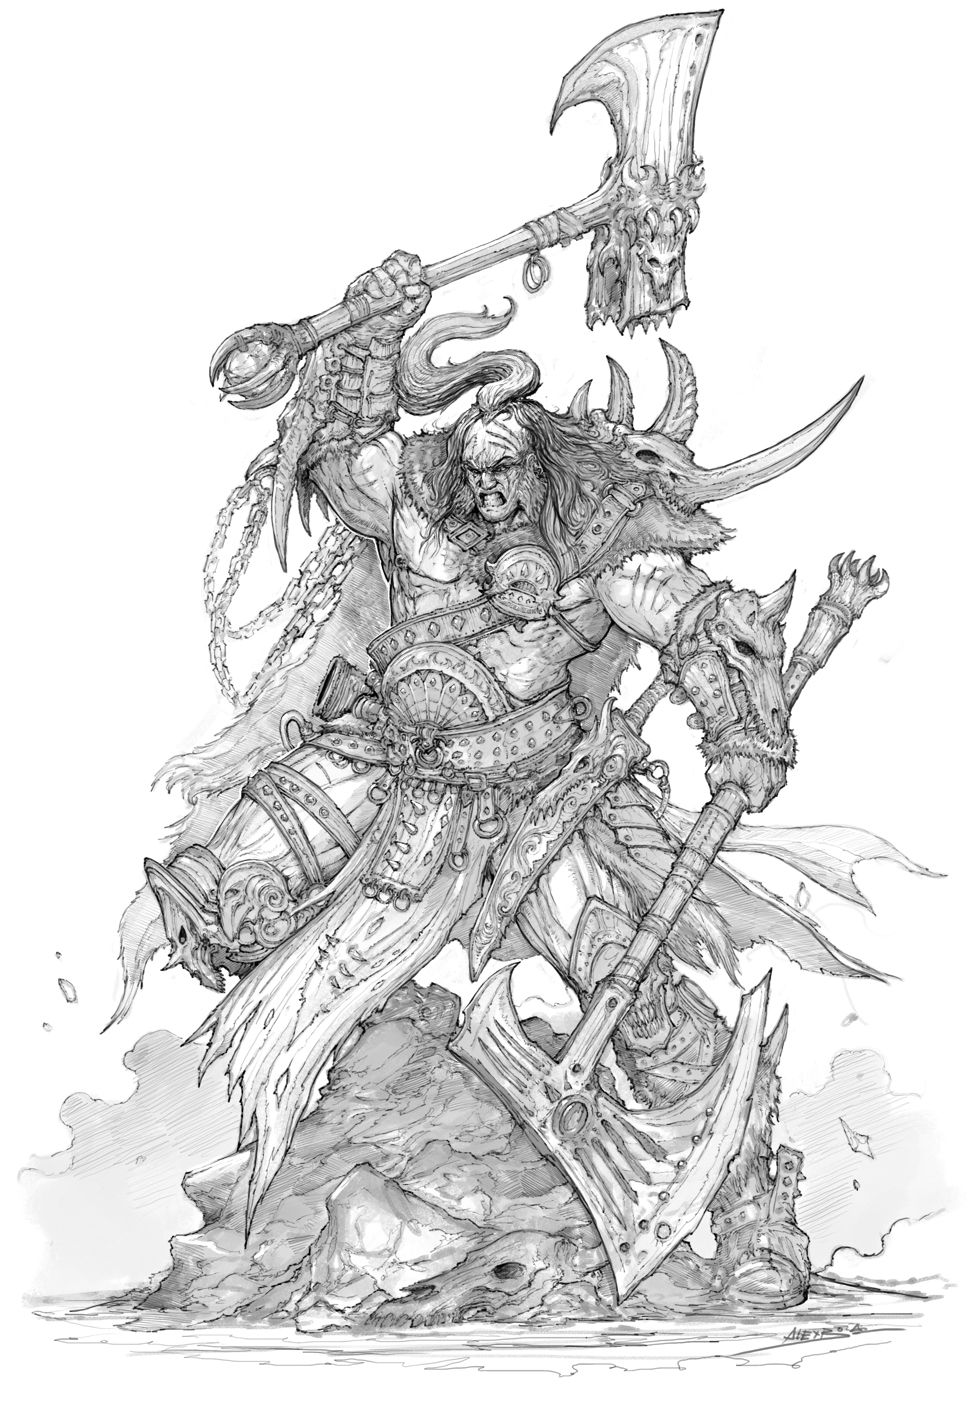 how to draw a barbarian barbarian by max dunbar on deviantart barbarian draw to how a